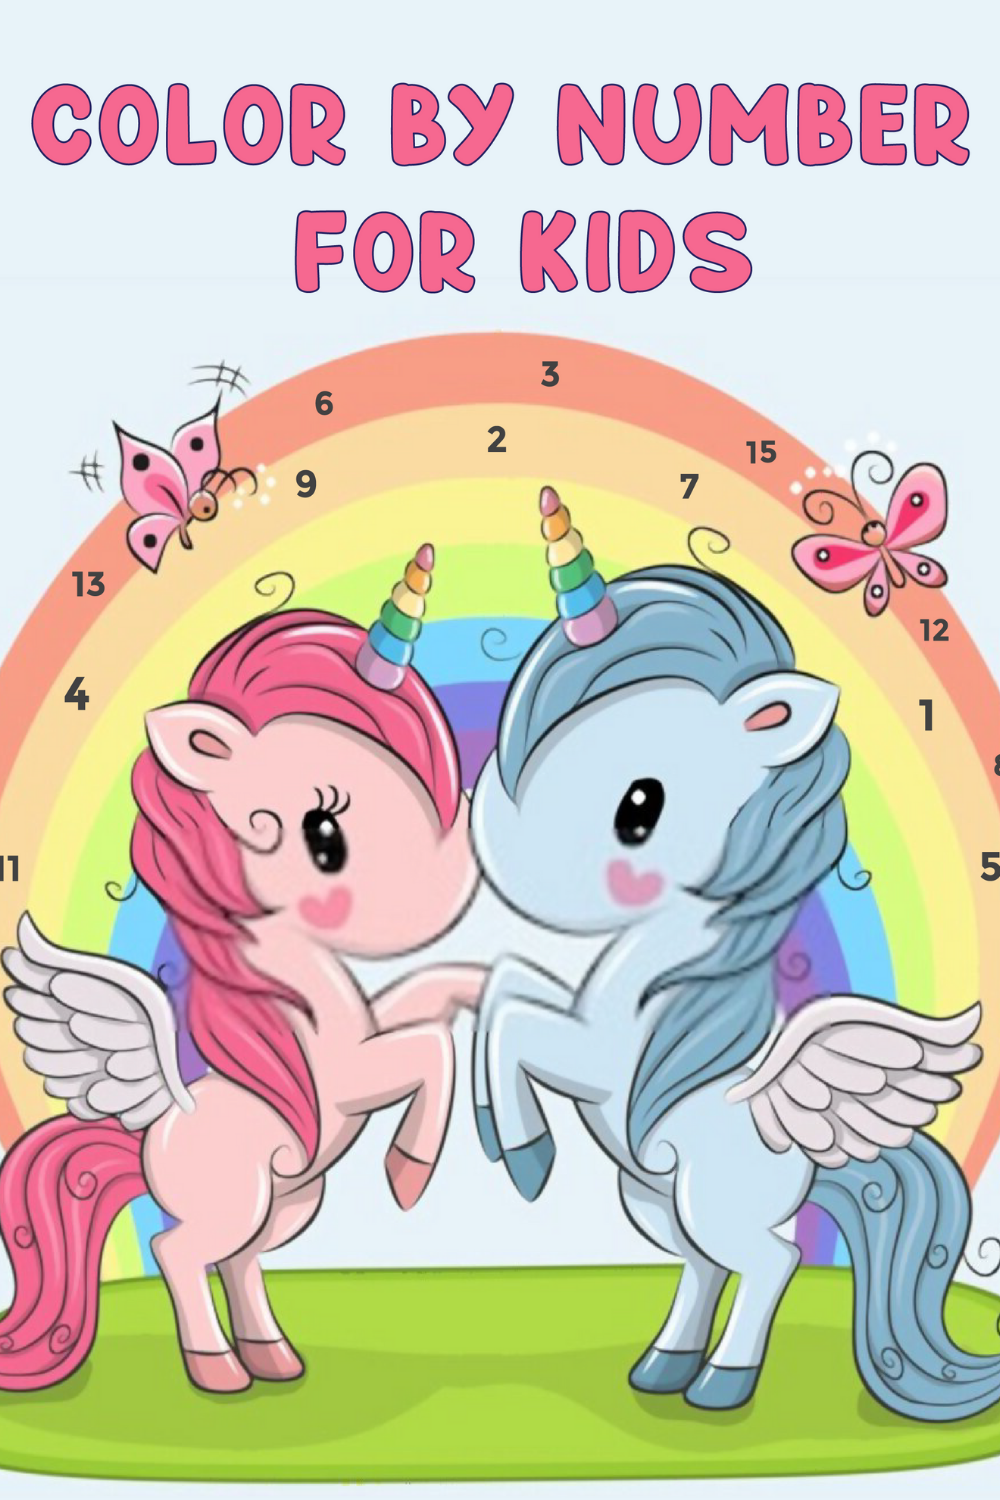 Color By Number For Kids Unicorn Coloring Book For Kids Ages 4 8 Unicorn Coloring Pages Coloring Books Unicorn Photos